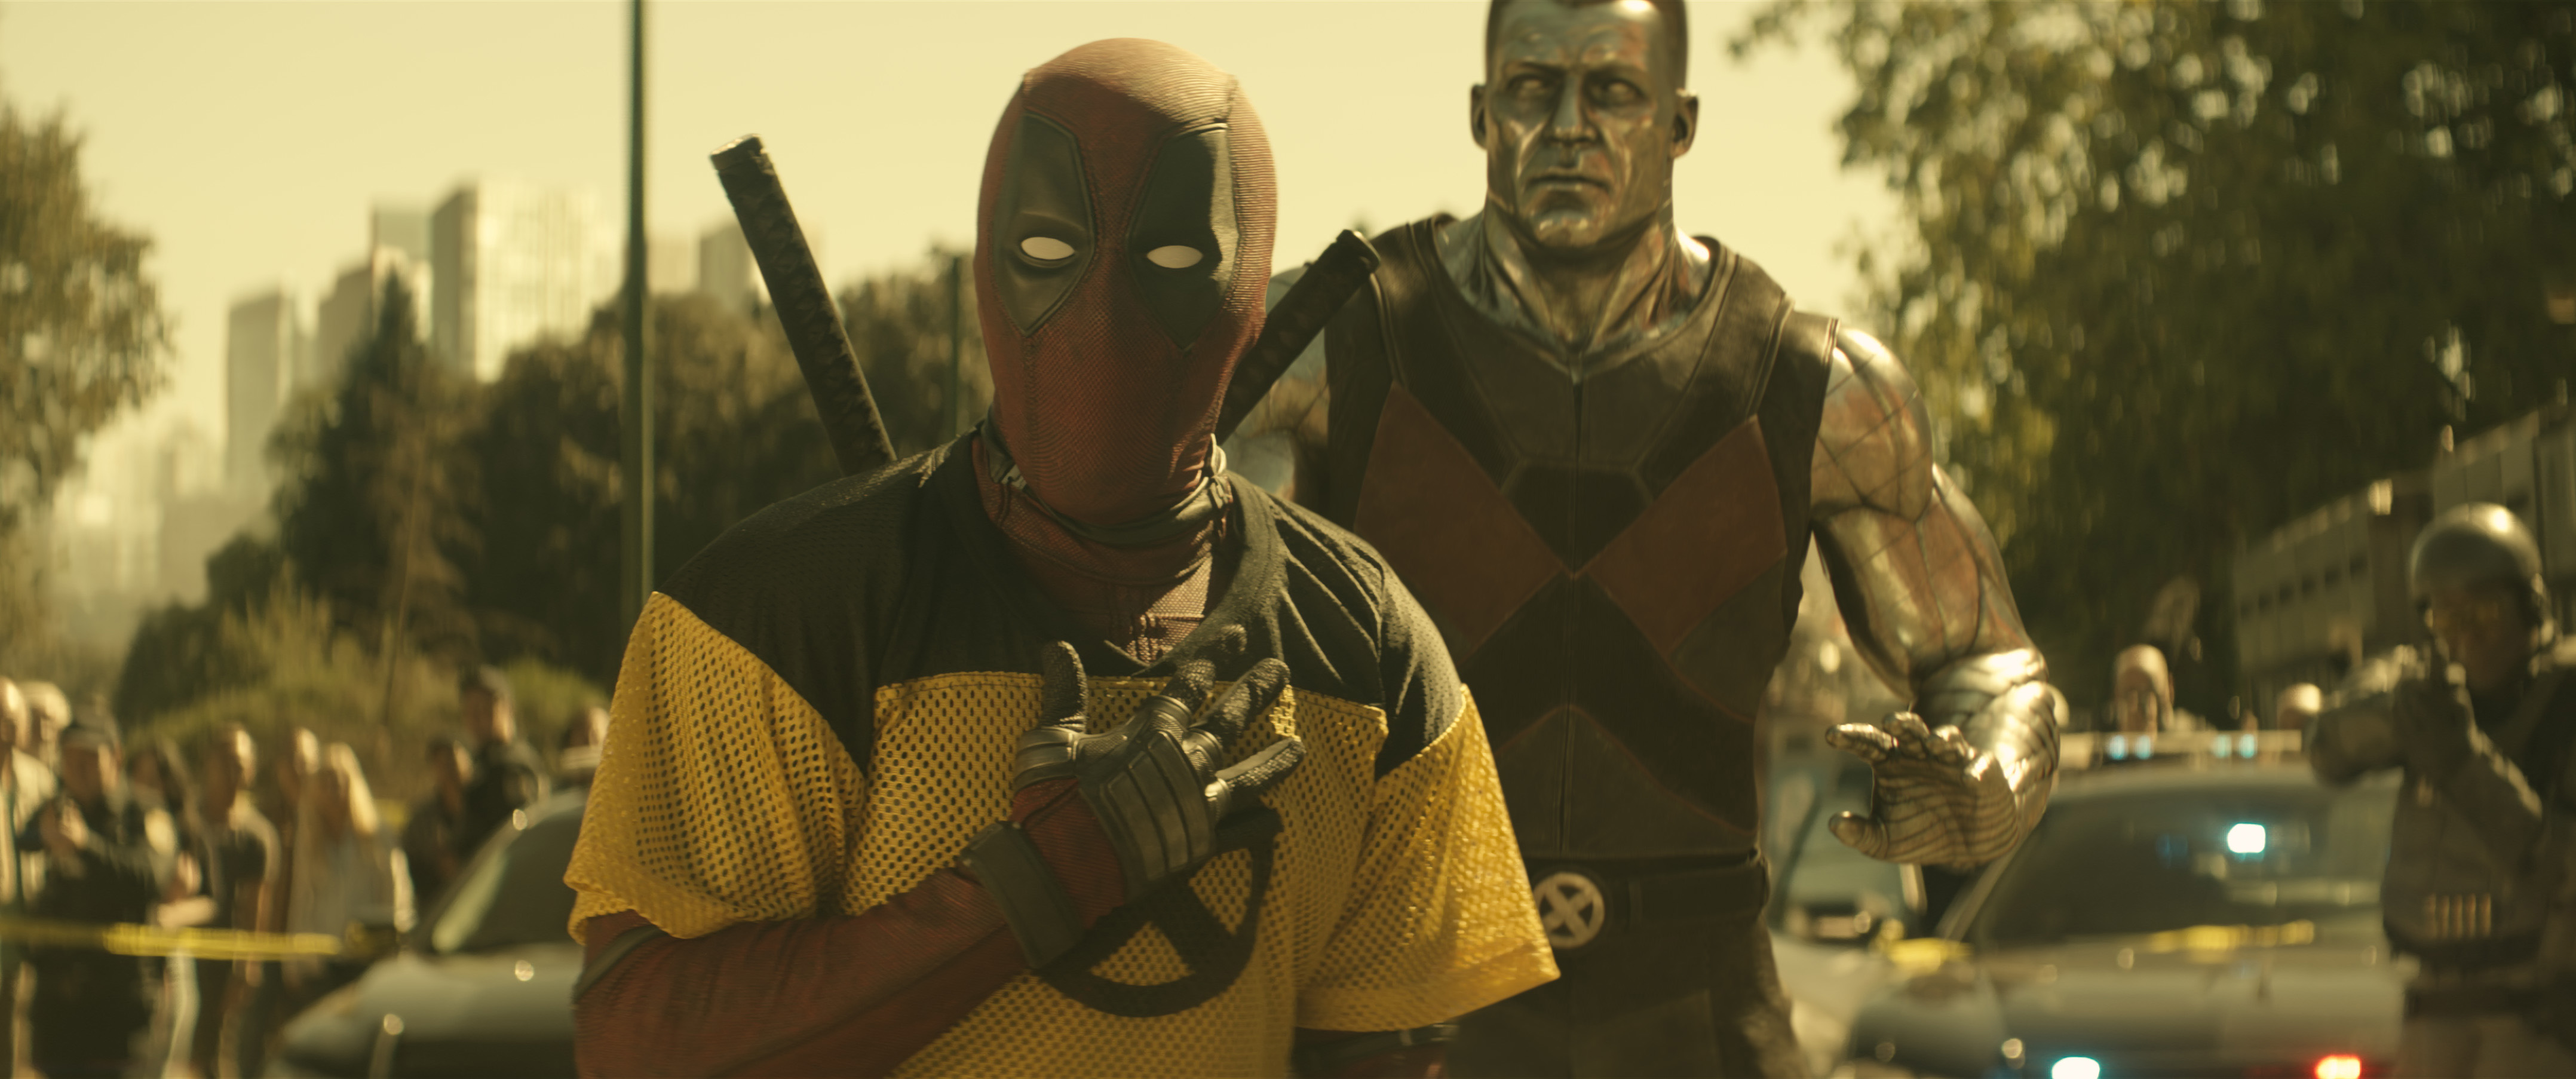 Once Upon A Deadpool Is Proof This Franchise Needs Its R